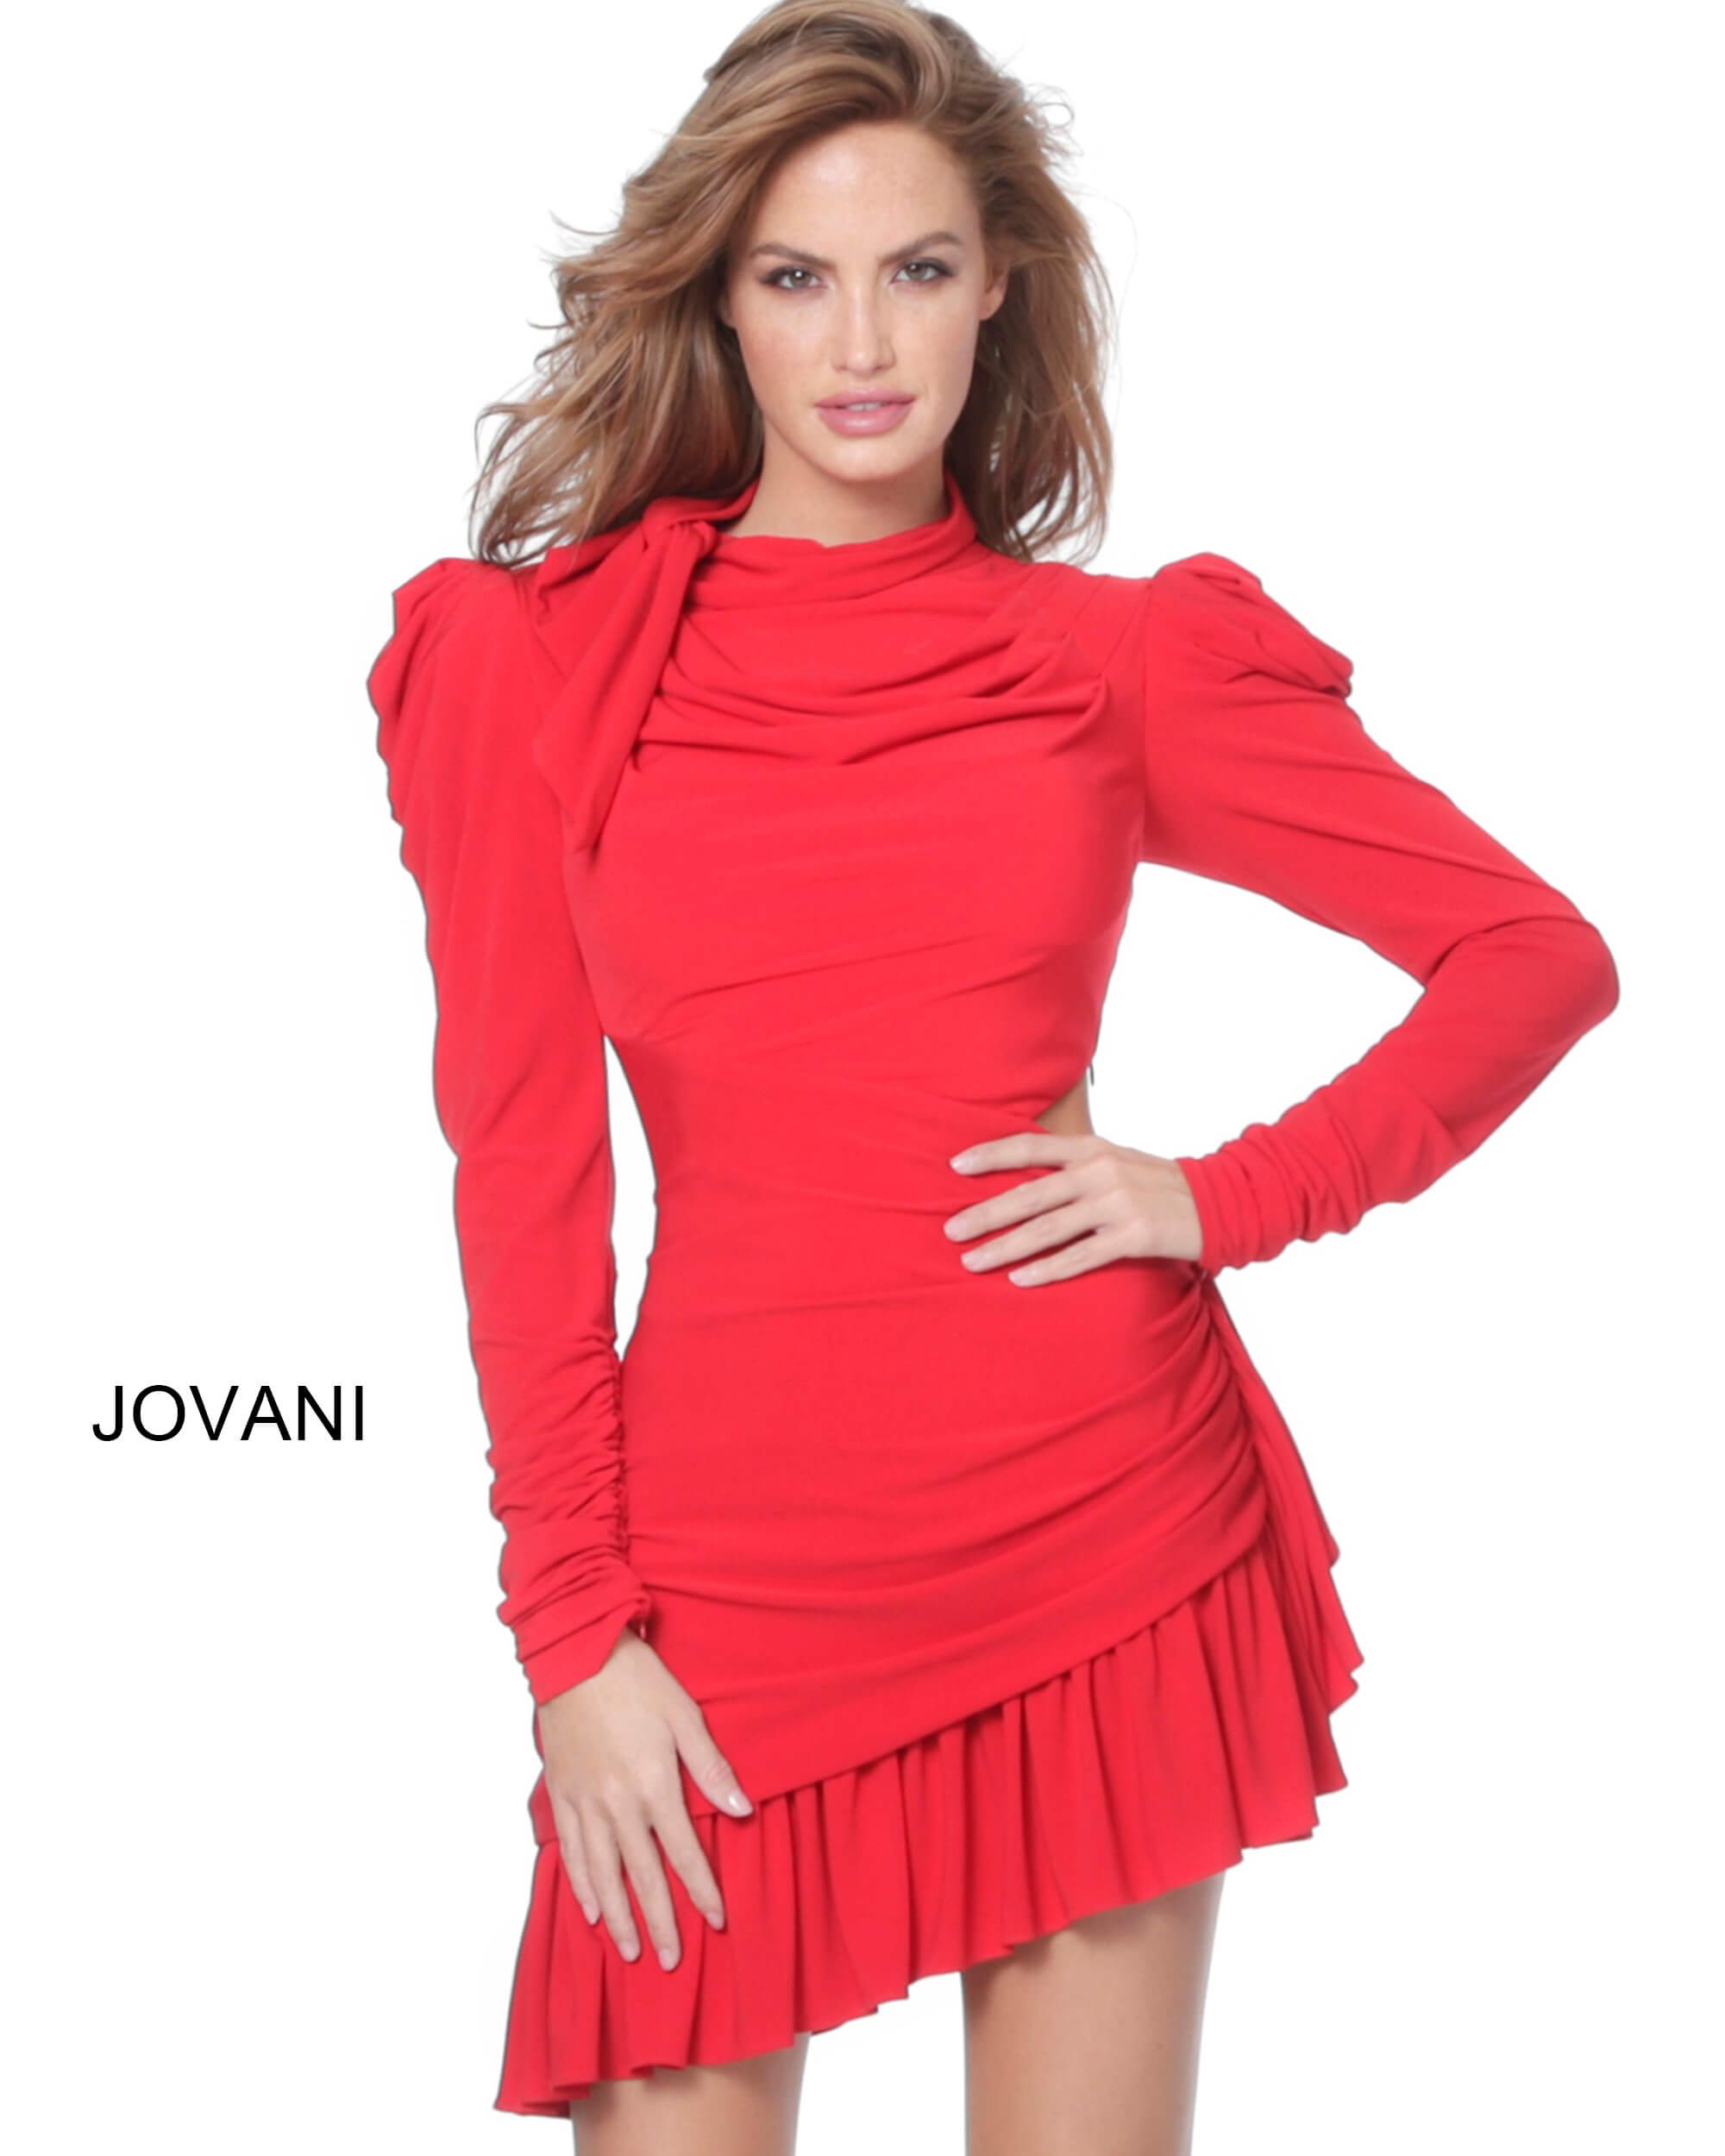 jovani Jovani 3076 Red High Neck Puff Sleeve Short Dress on mobile 1